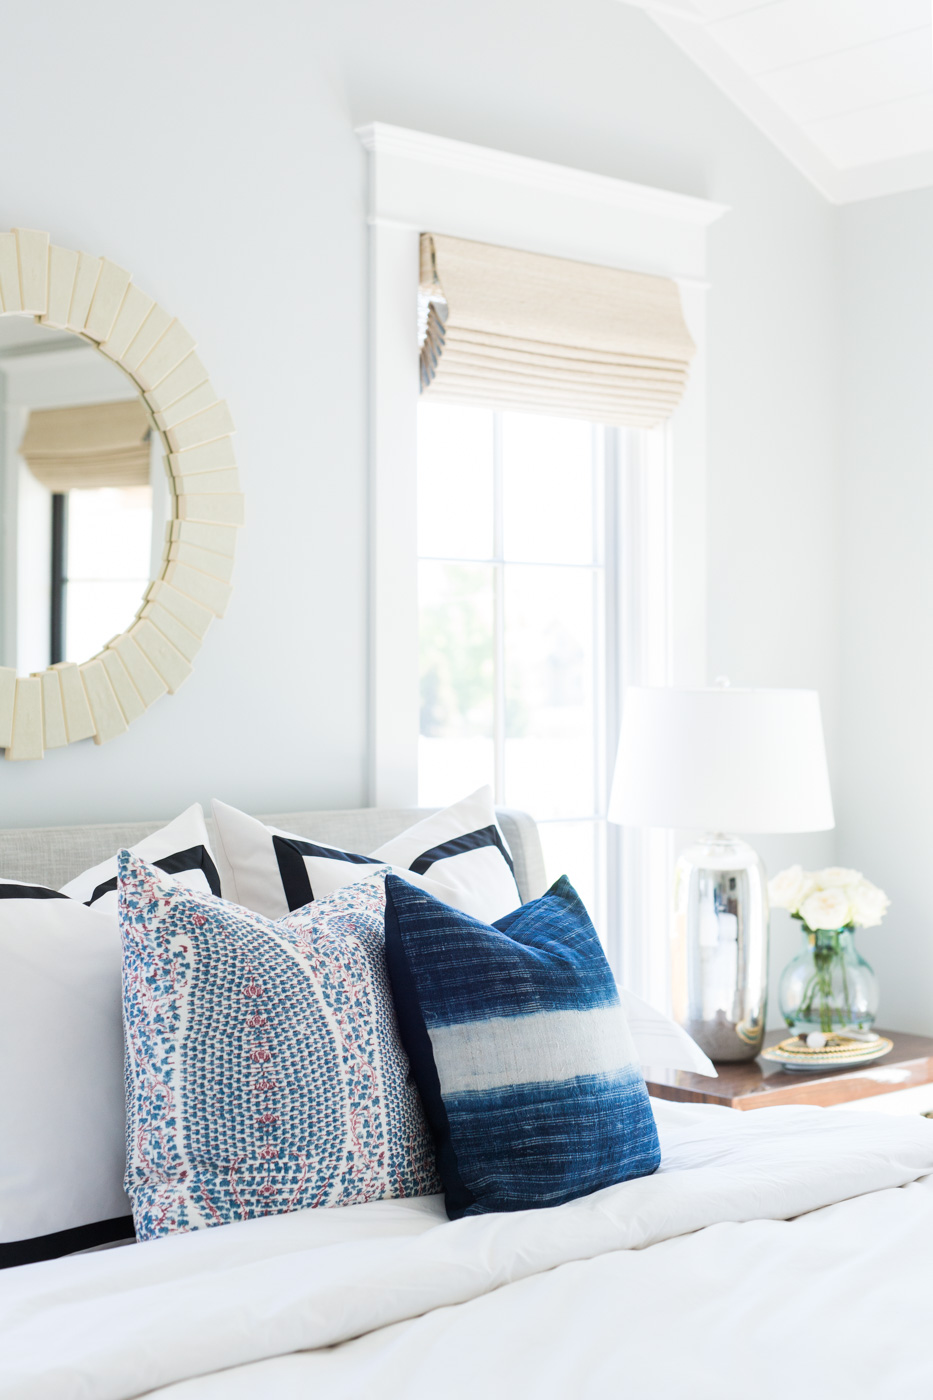 Decorative blue pillows on white bed